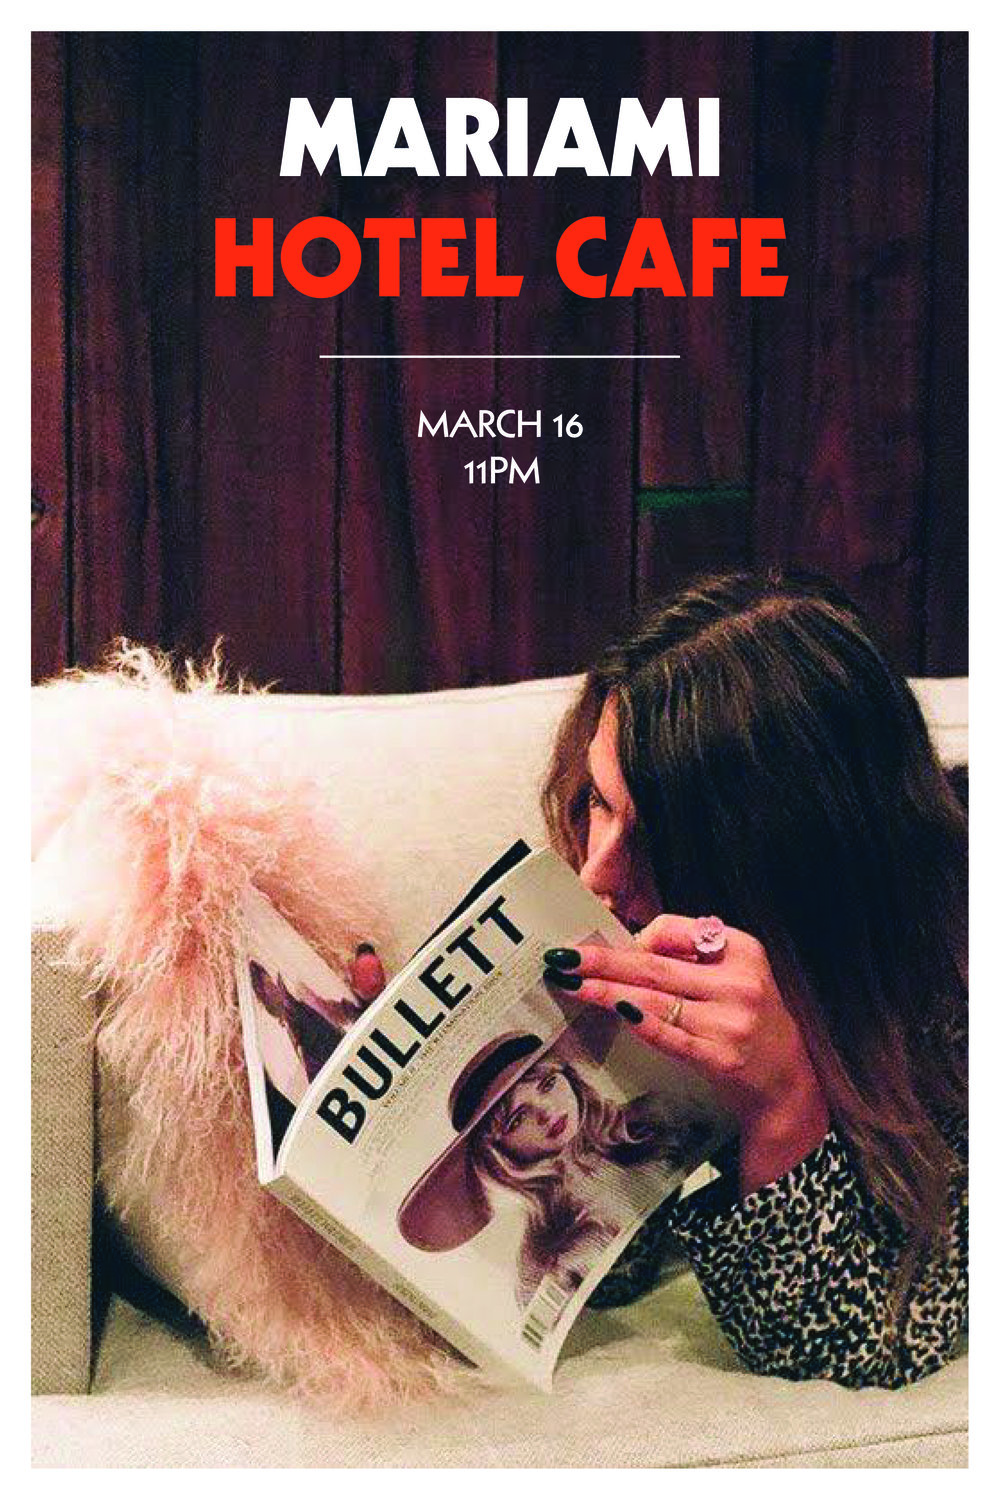 MARIAMI AT HOTEL CAFEON MARCH 16 - TIX HERE